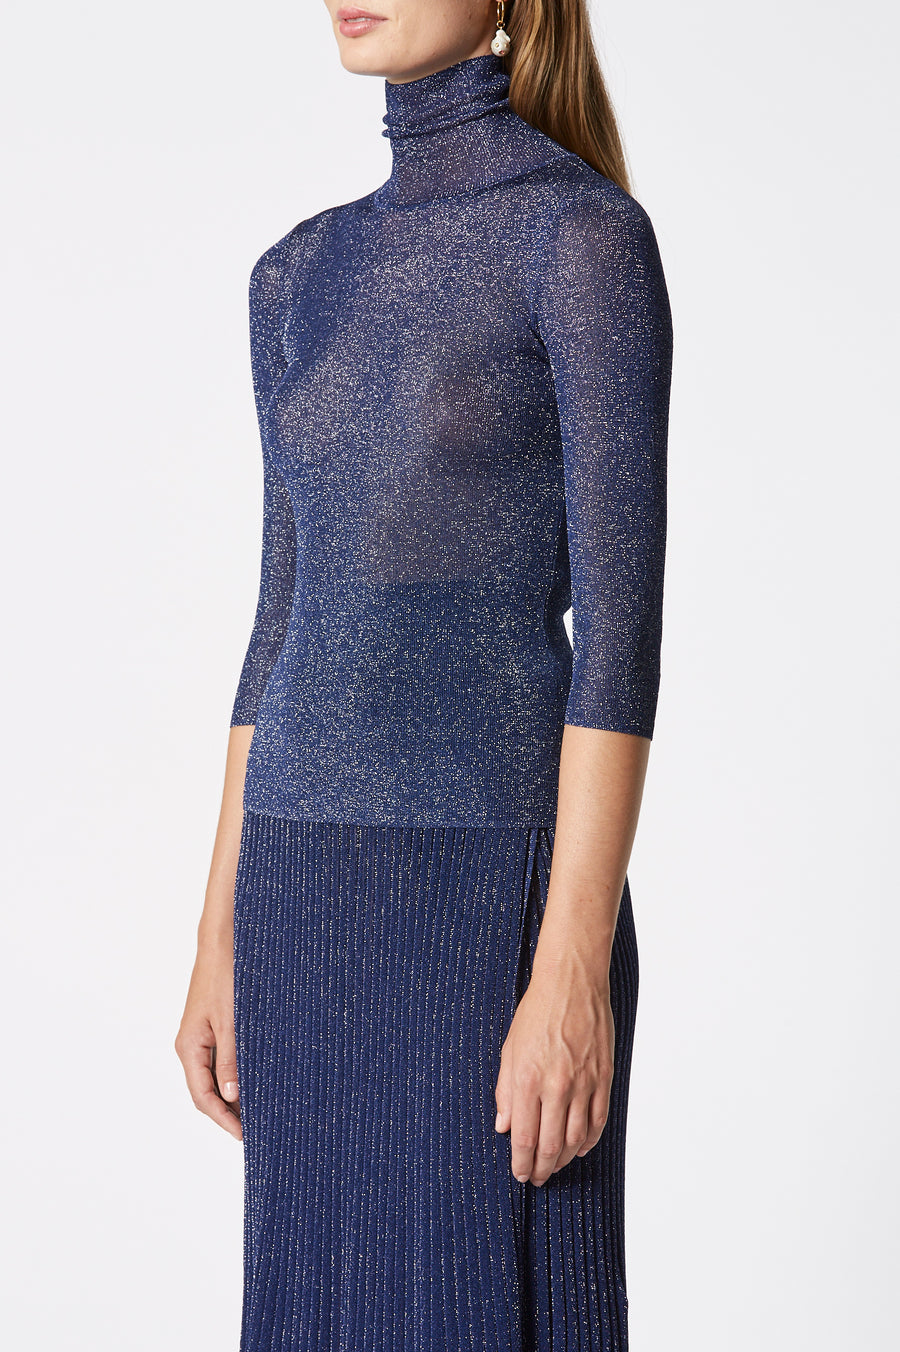 Sparkle Rib Sweater, High Neck, 3/4 Sleeve, Fitted on body, Color Navy